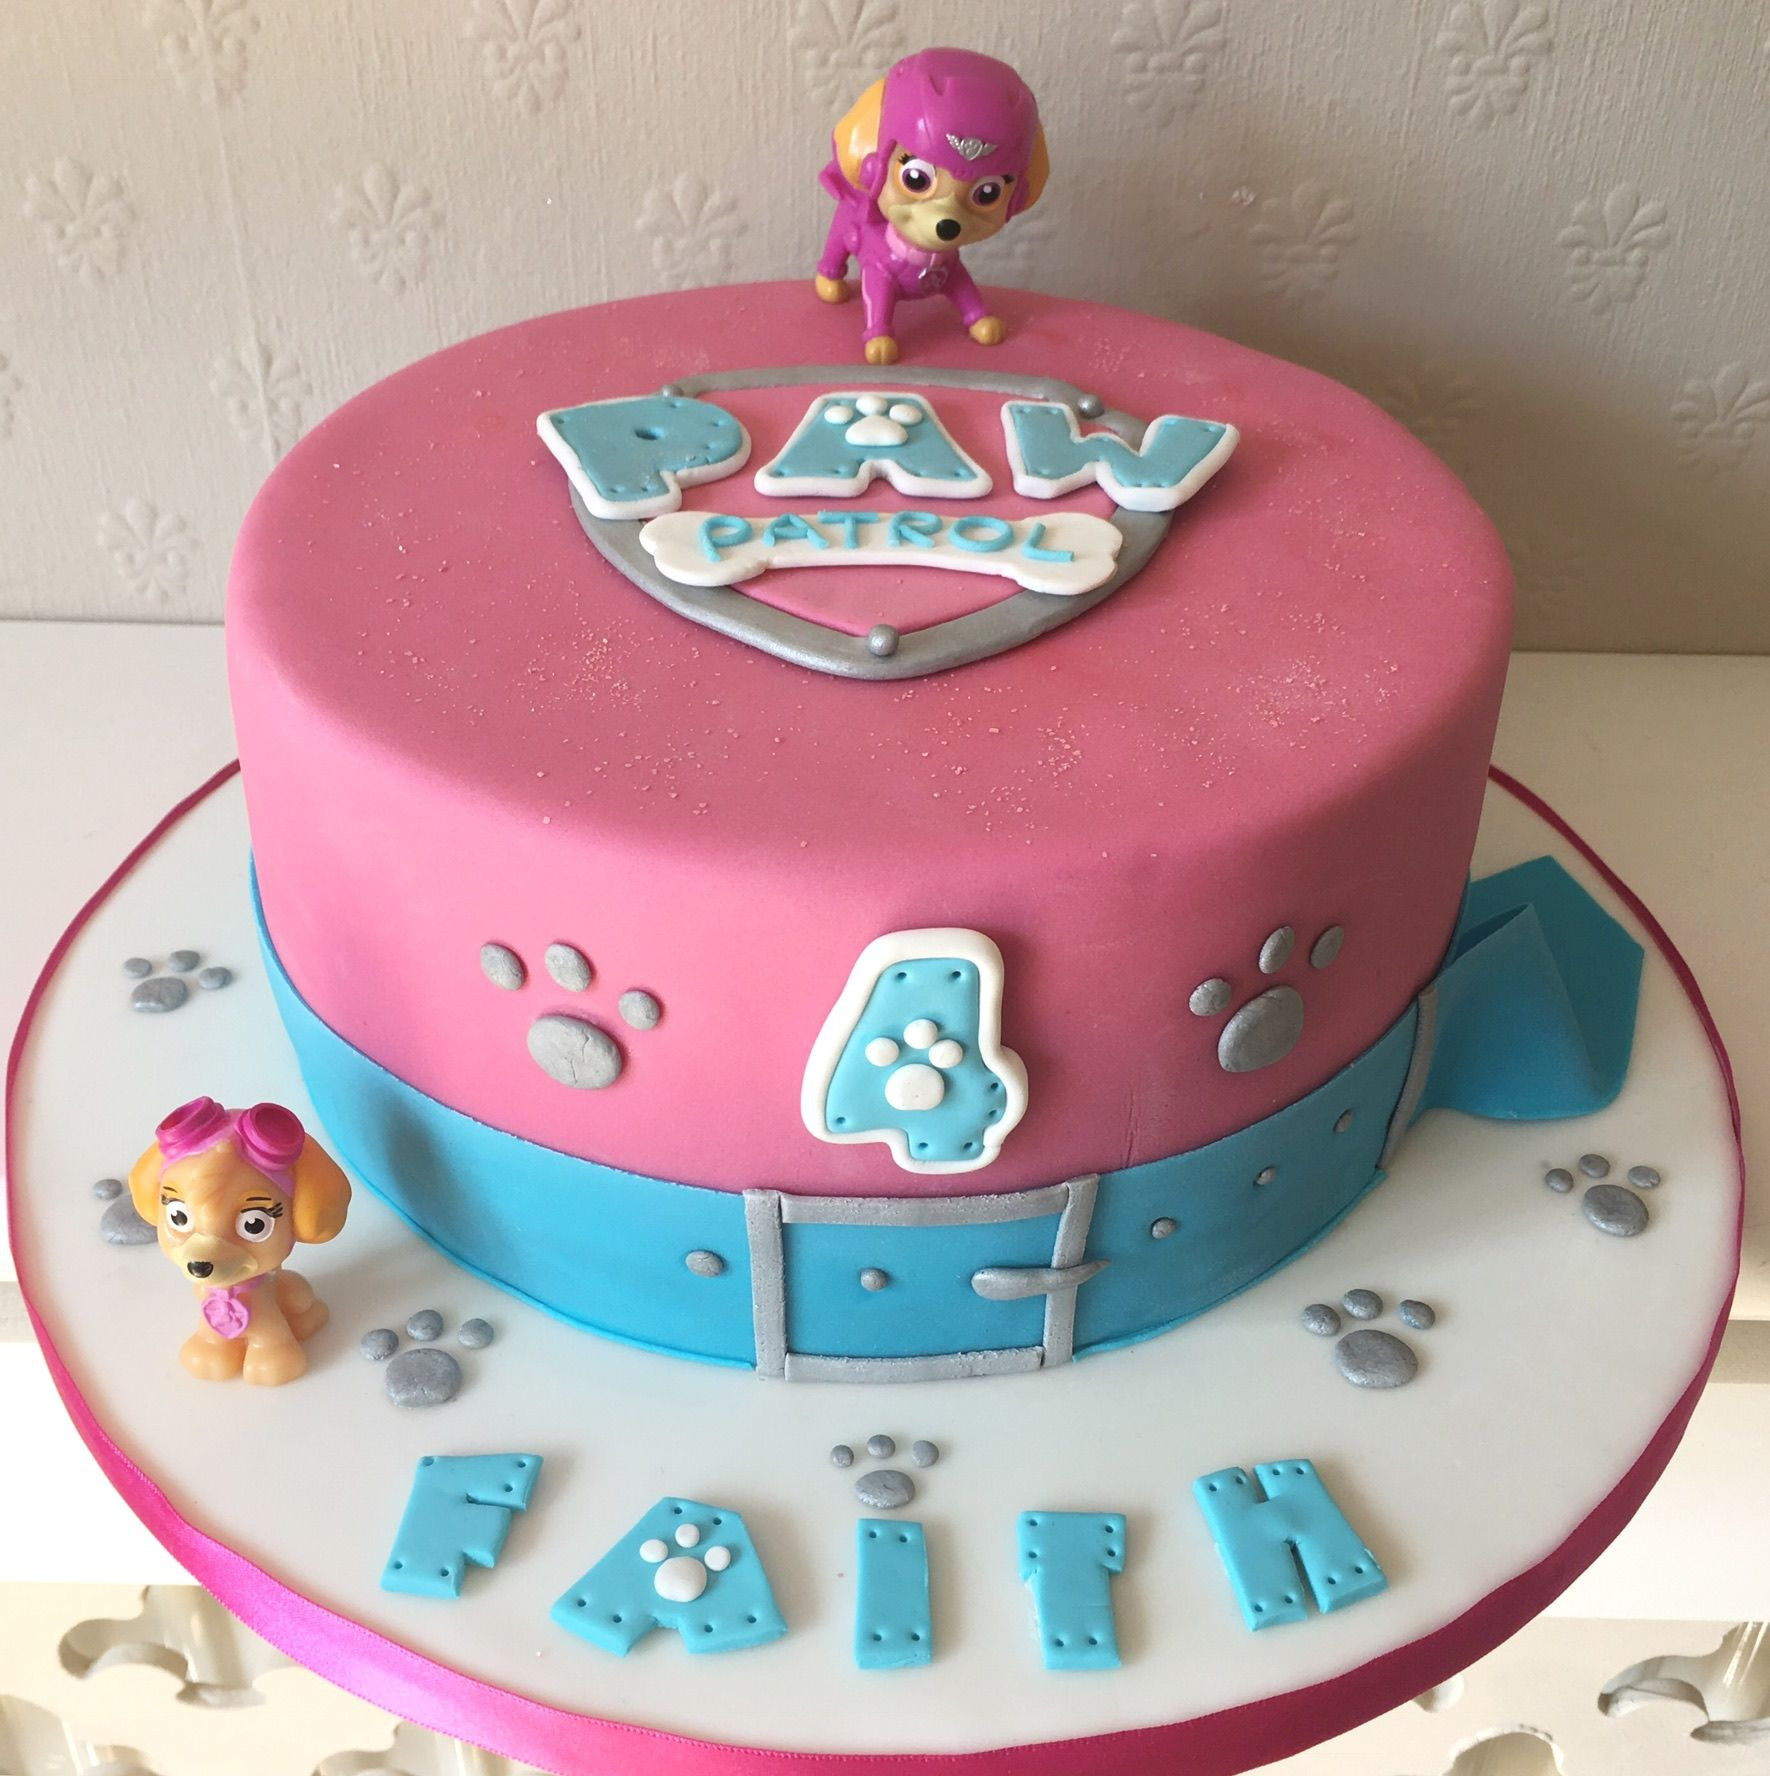 Best ideas about Paw Patrol Girl Birthday Cake . Save or Pin Paw Patrol Skye themed cake adele 3 Now.